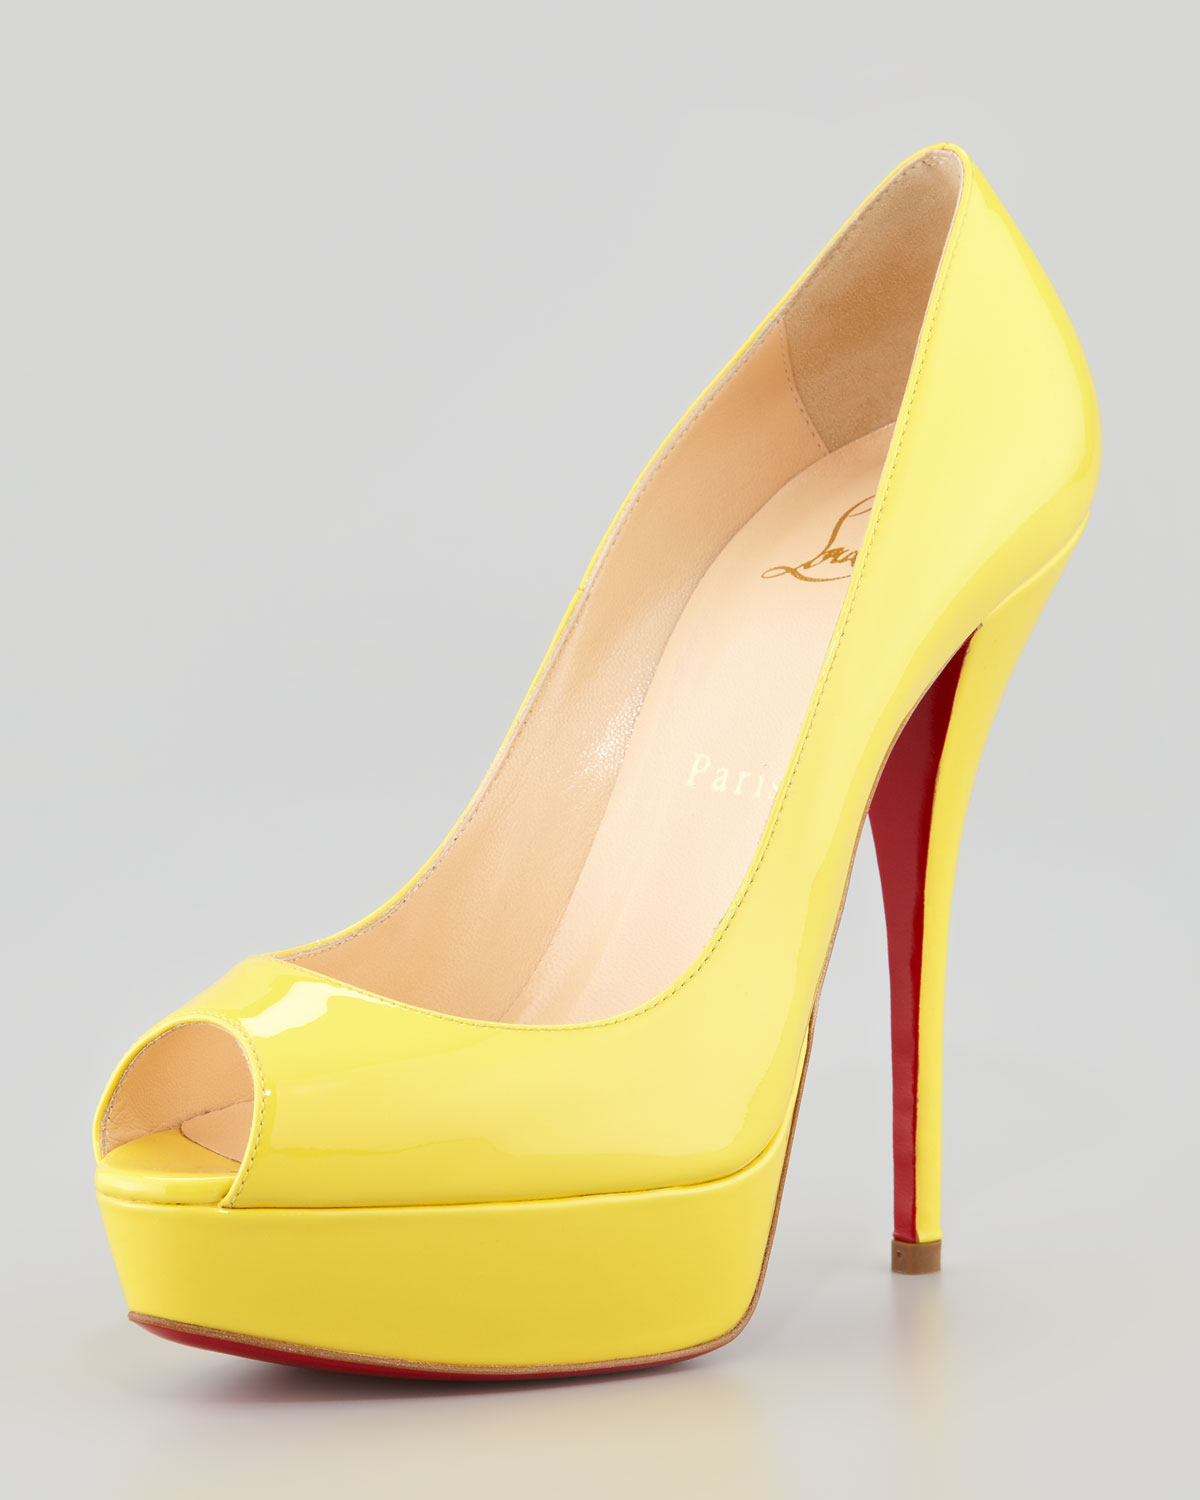 85e388fd9 Christian Louboutin Troca Patent Red Sole Platform Pump in Yellow - Lyst